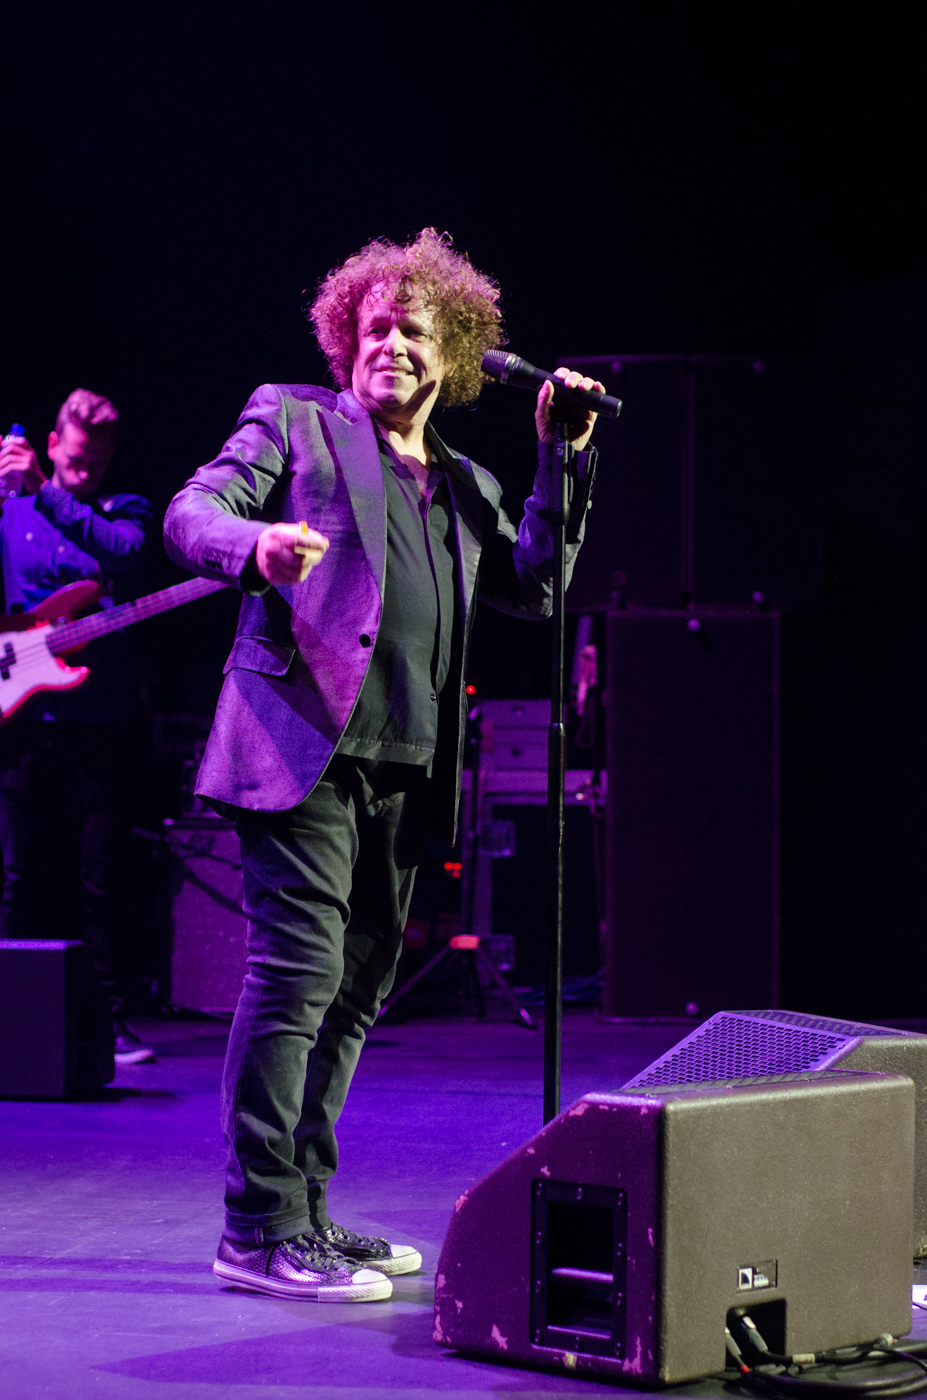 Leo Sayer at Bord Gais Energy Theatre by Sean Smyth (16-10-15) (108 of 129)